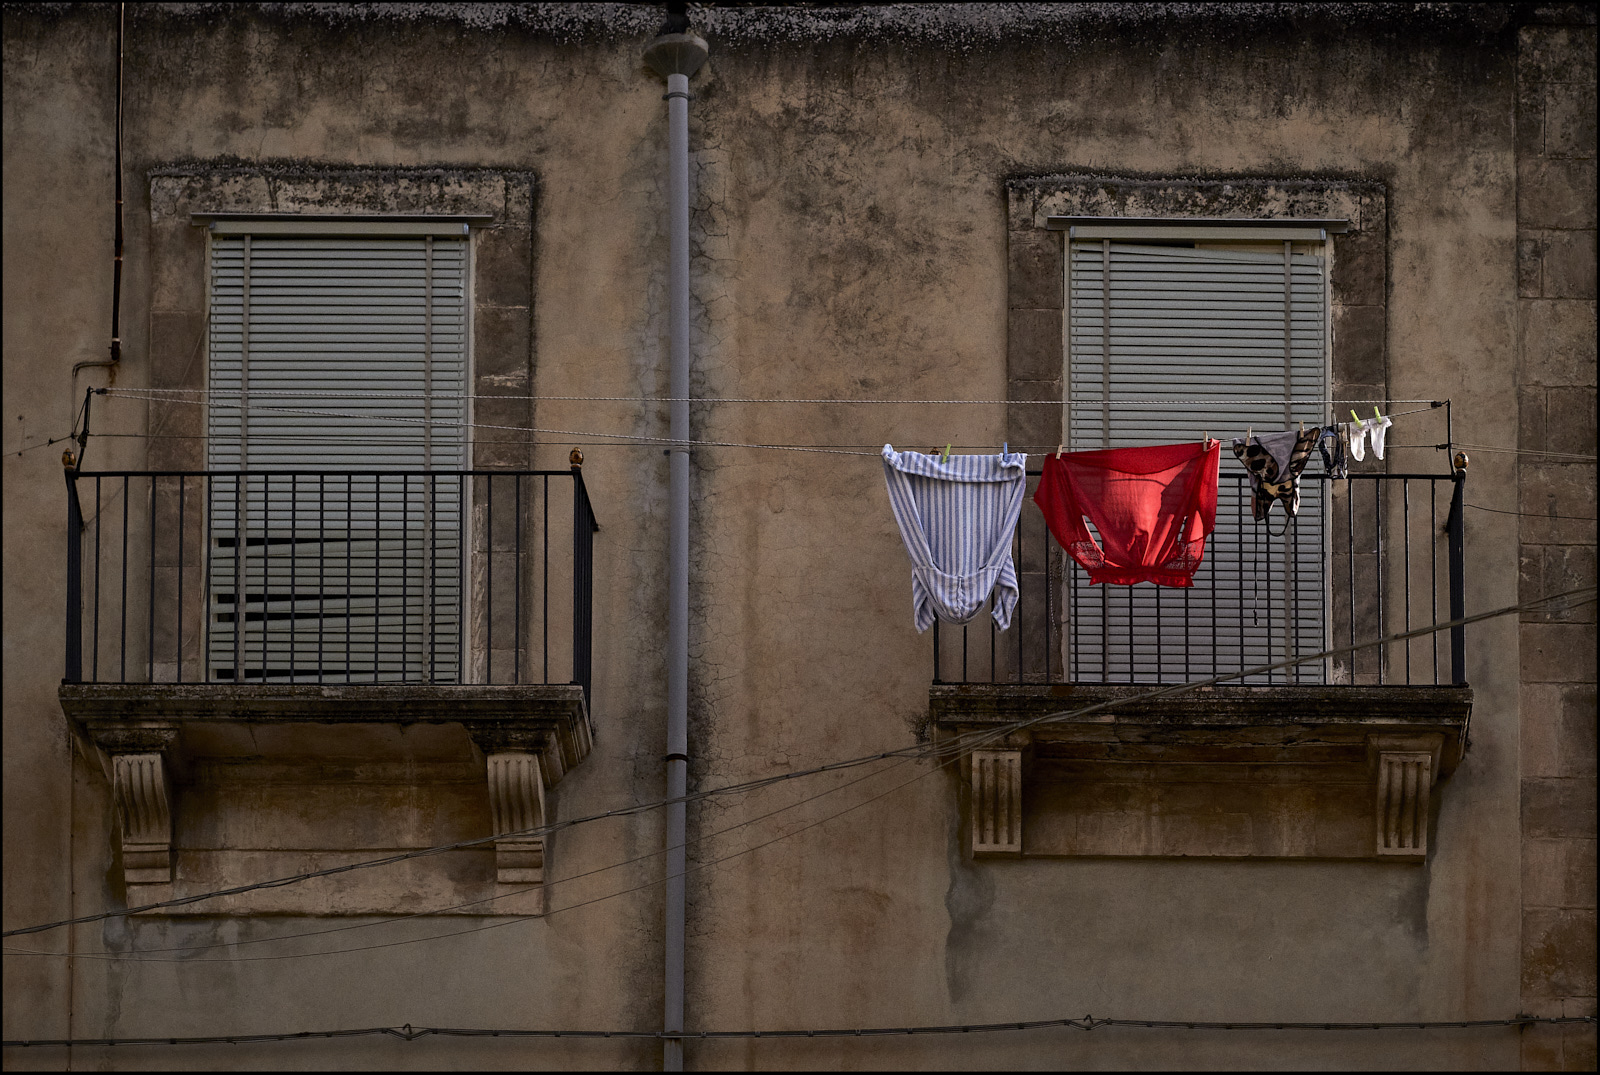 Laundry time...